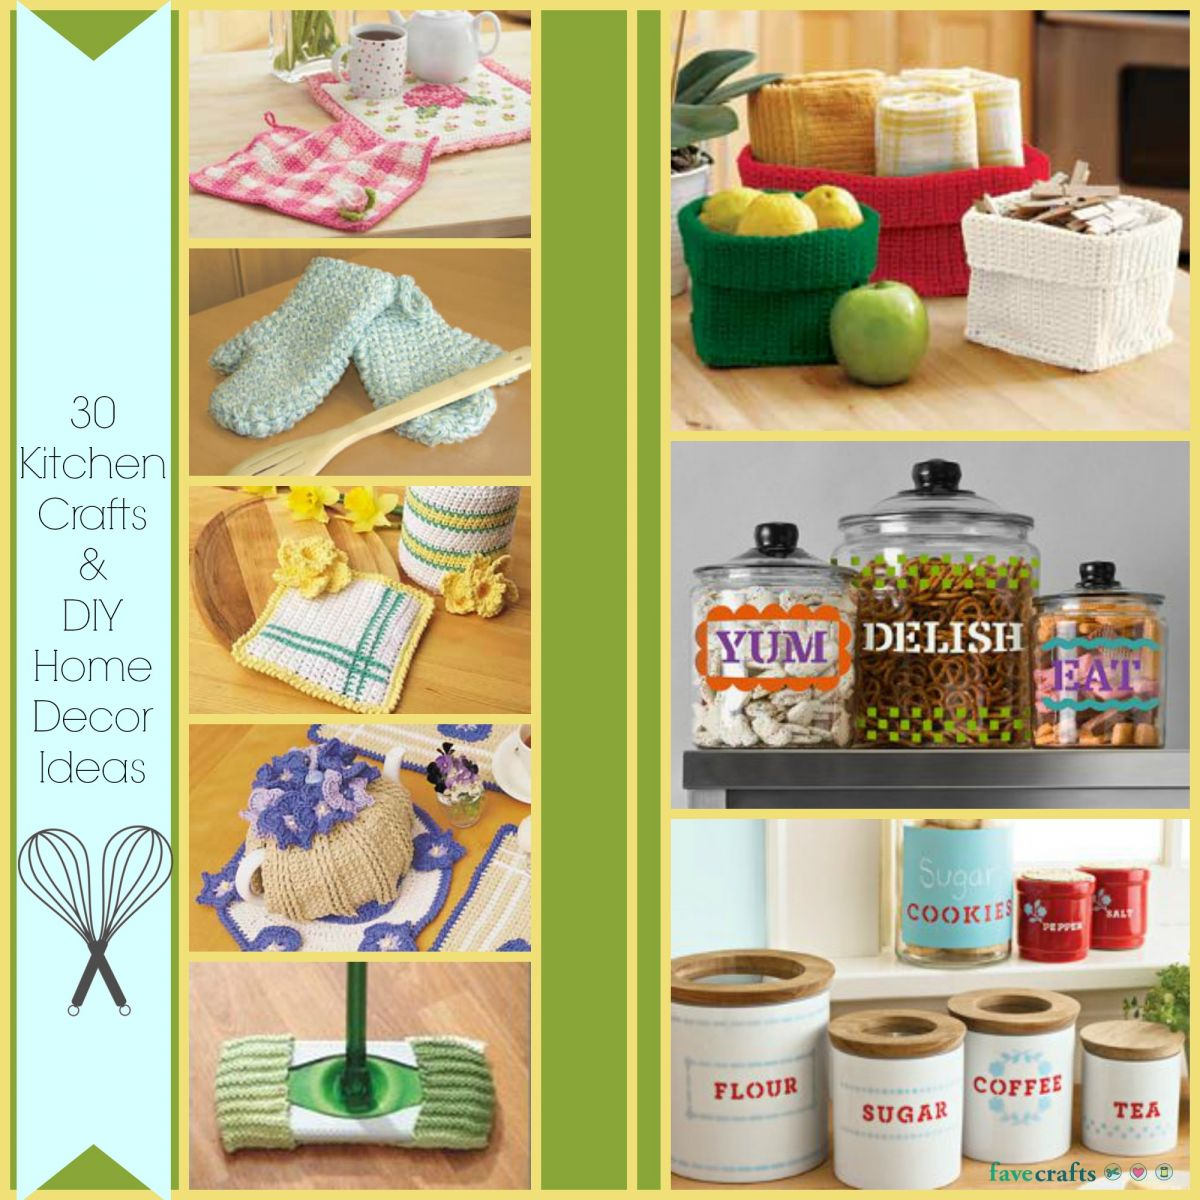 30 Kitchen Crafts and DIY Home Decor Ideas FaveCraftscom